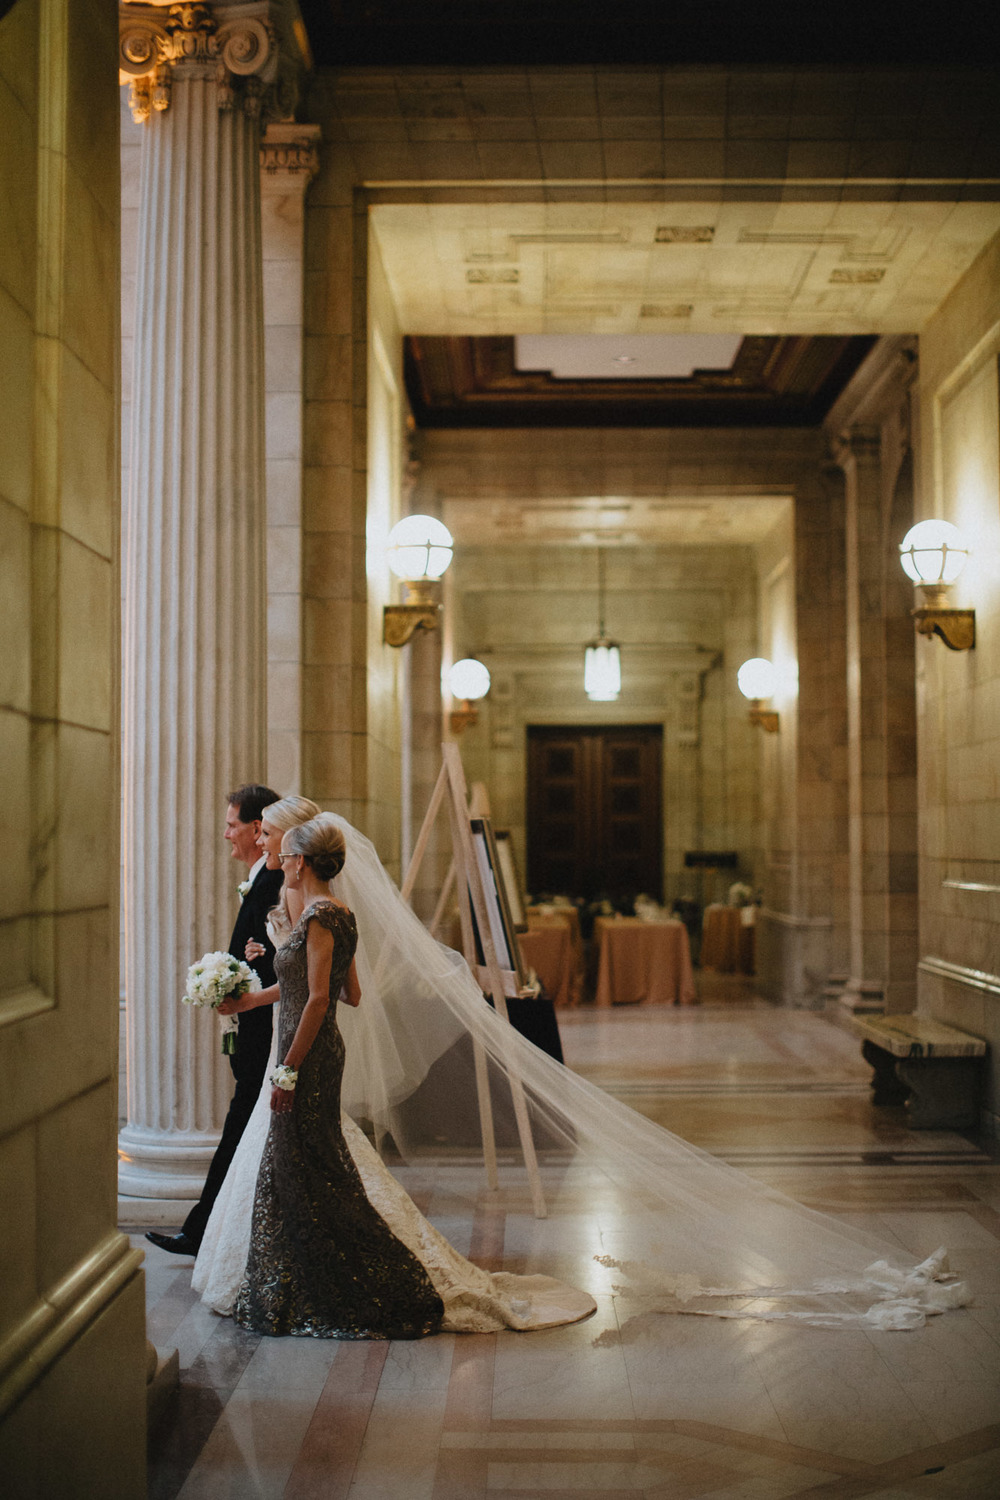 Alana-David-Cleveland-Old-Courthouse-Wedding-118@2x.jpg